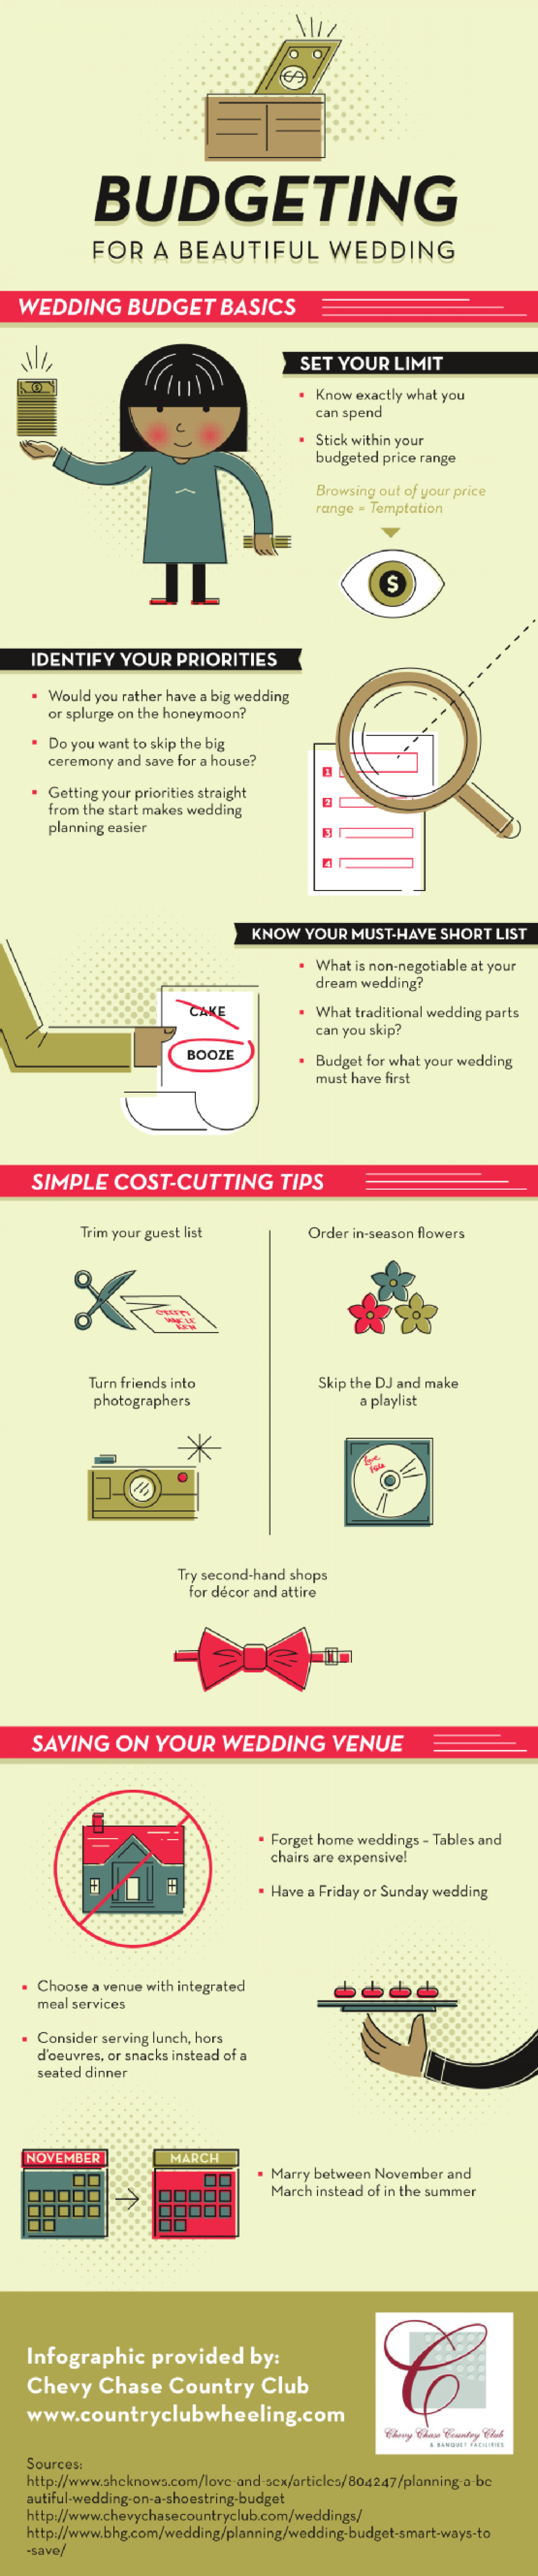 Budgeting for a Beautiful Wedding Infographic